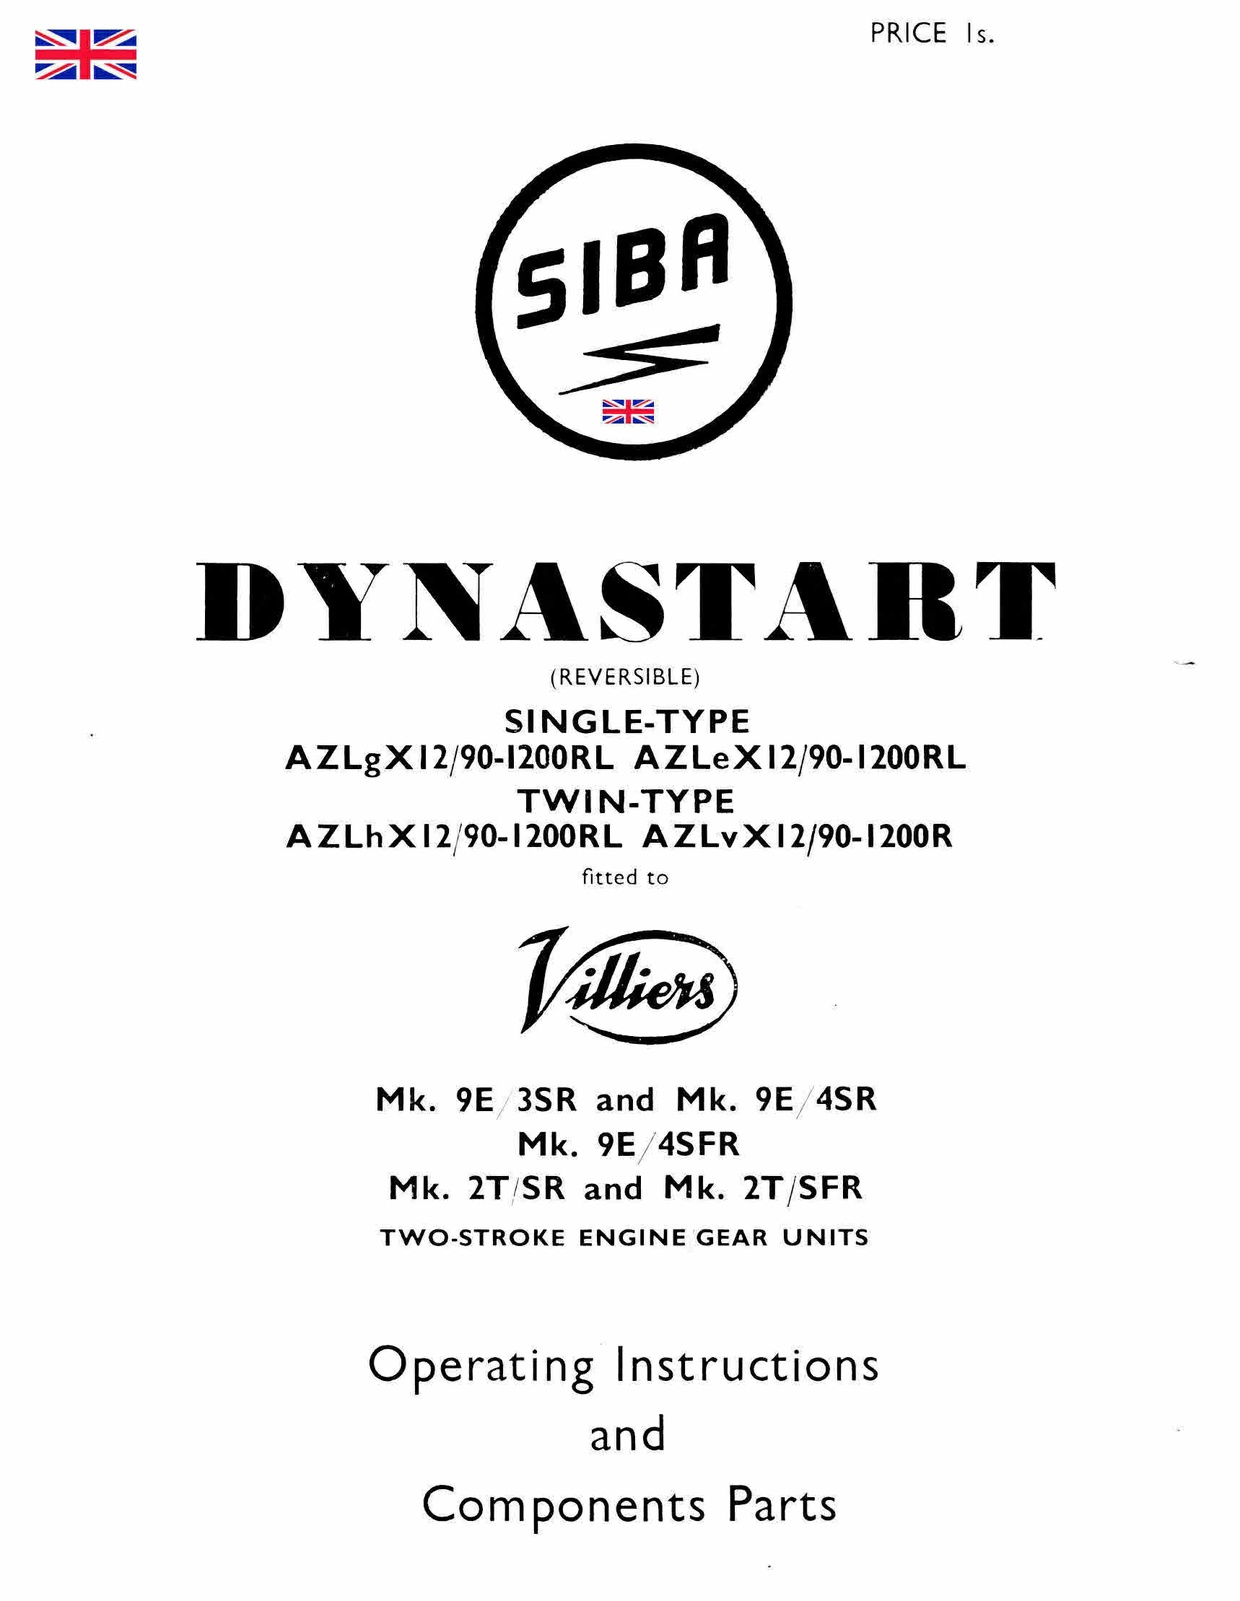 dynastart wiring diagram australian house villiers siba manuals for mechanics